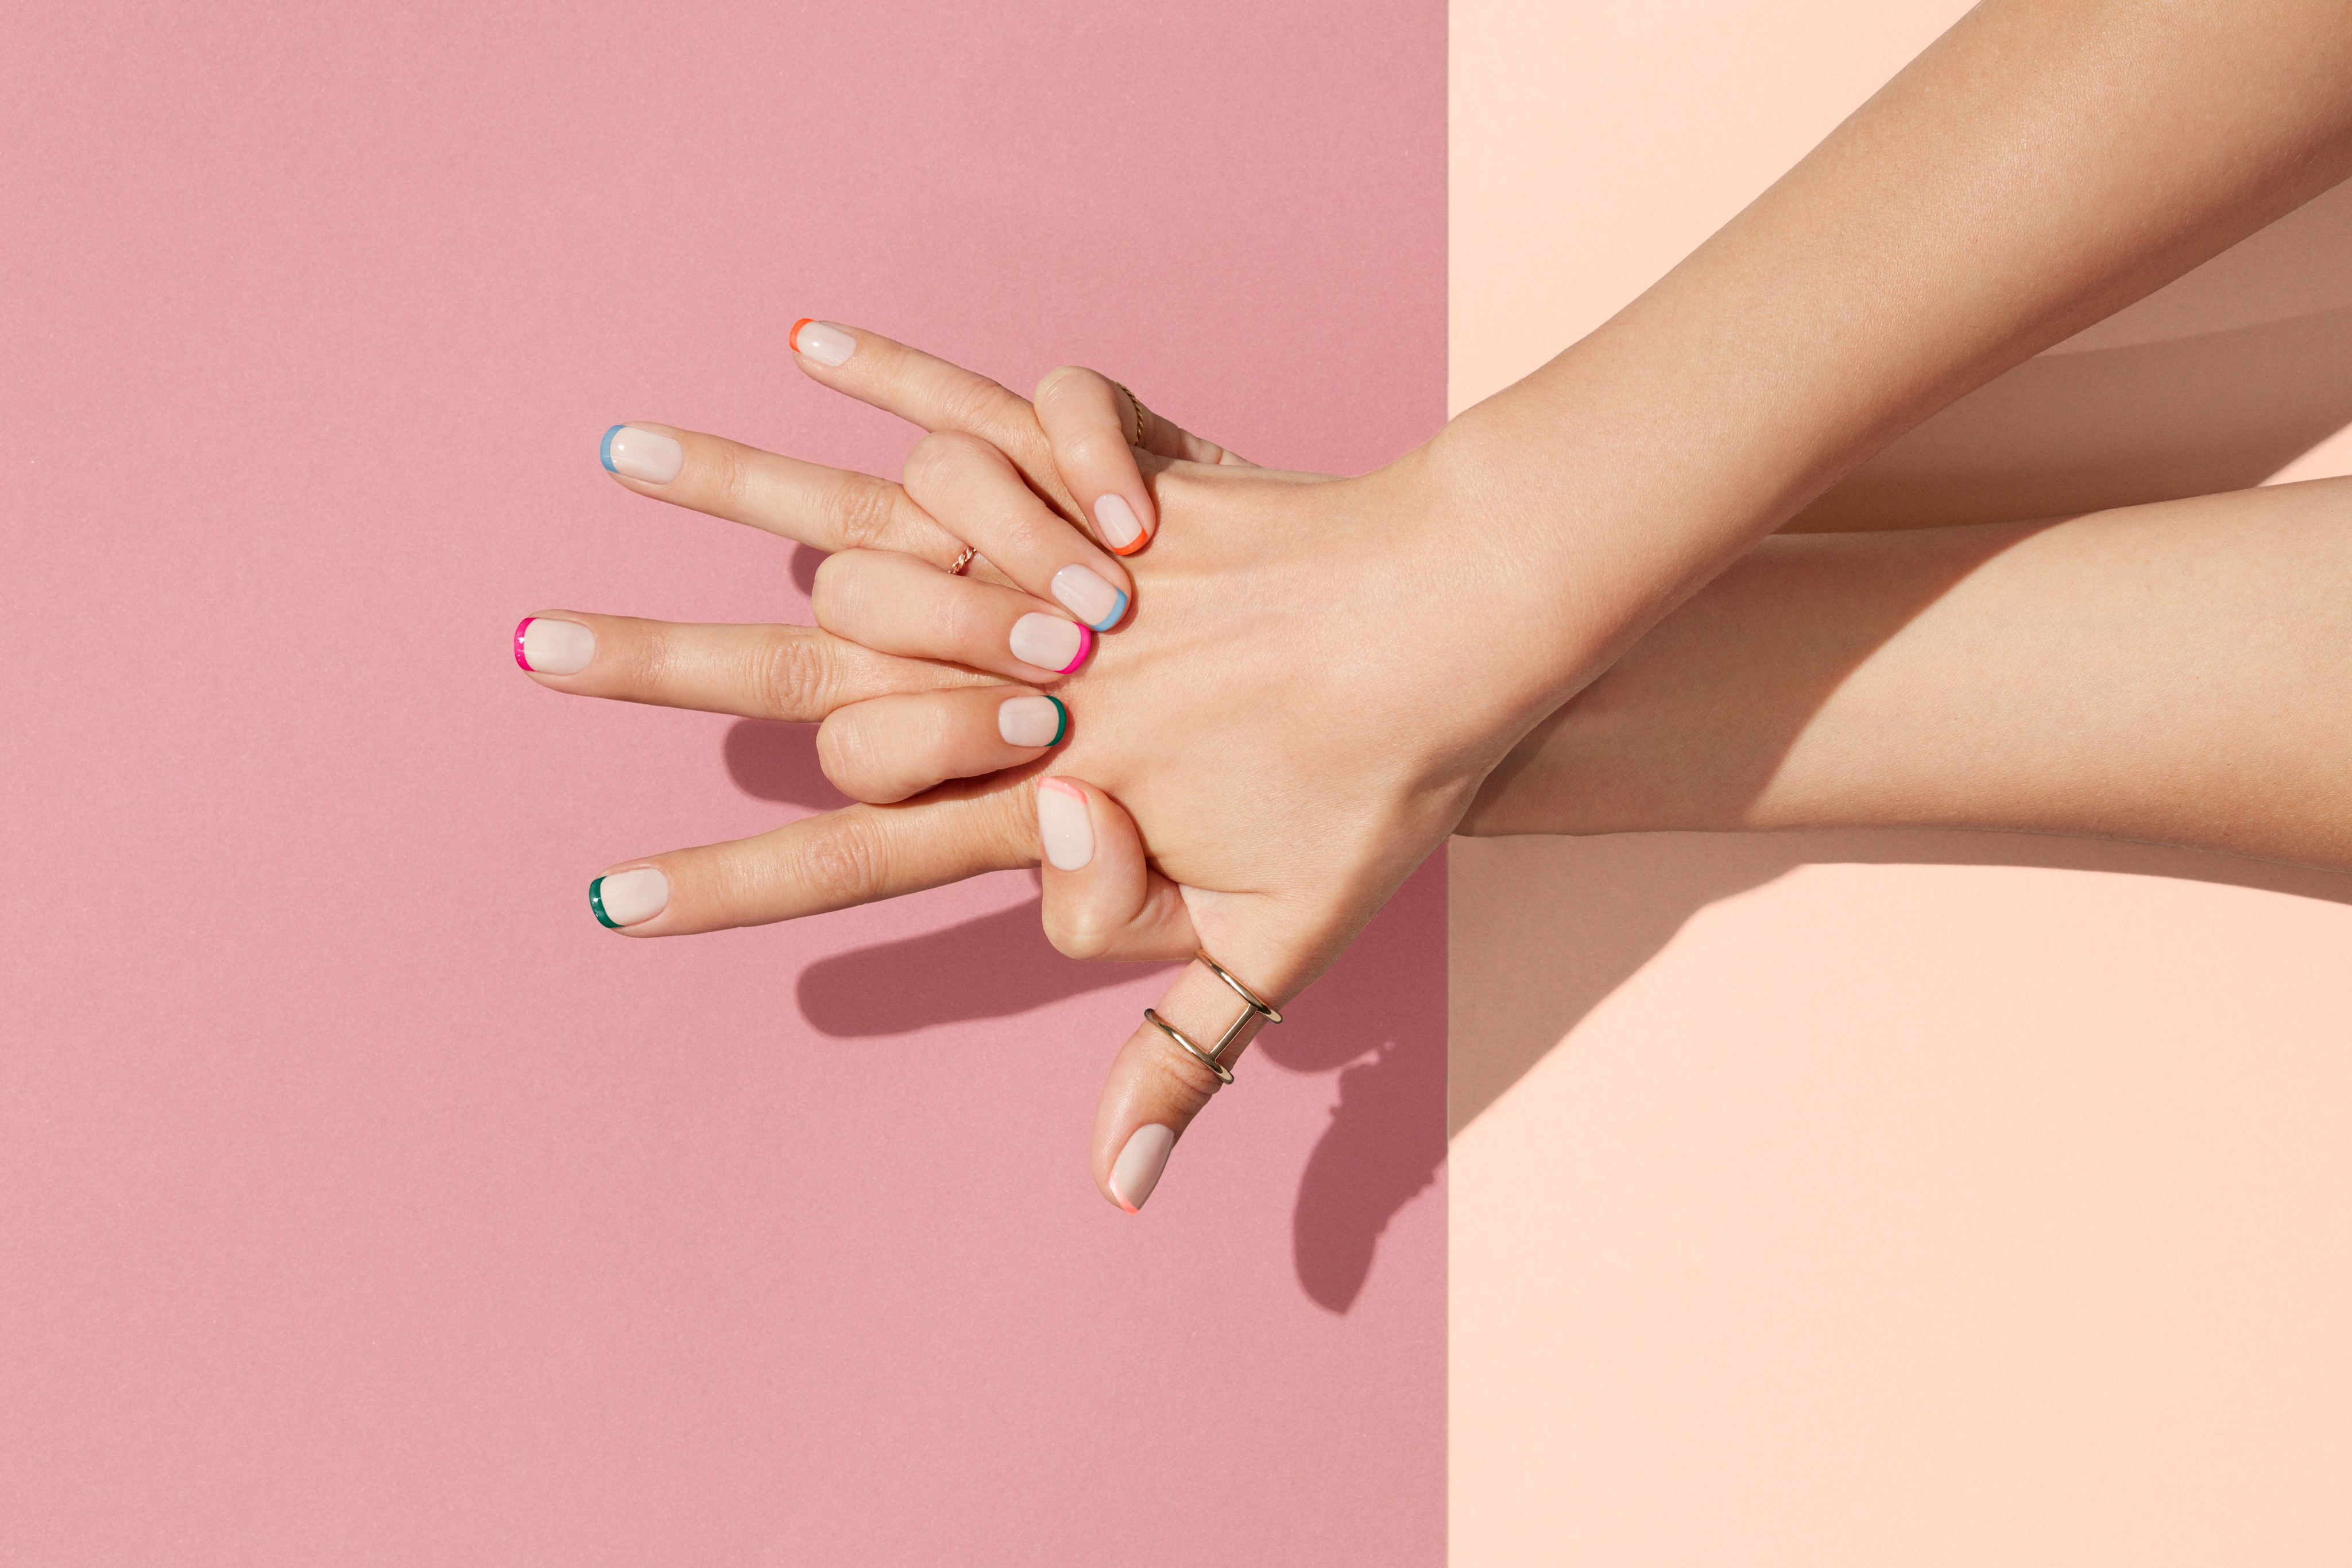 Nailcare-beautyvisual-nude-colorful-laces-rose-peach-color-0821-Web-Rendition